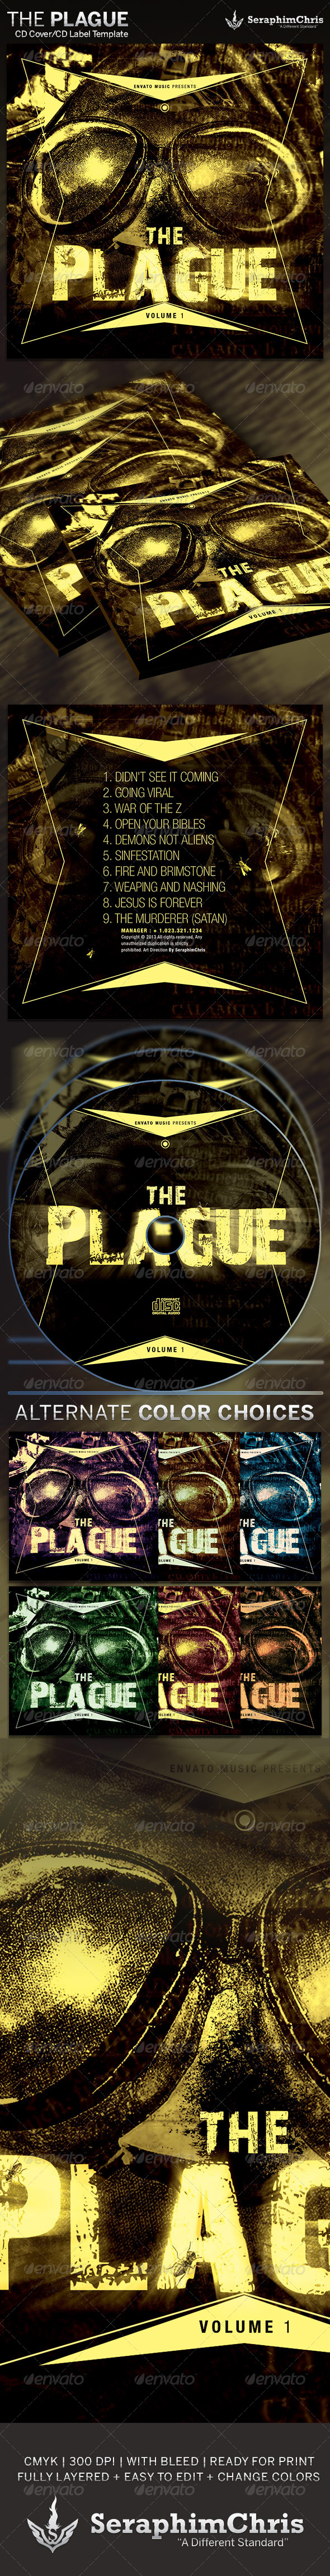 GraphicRiver The Plague CD Cover Artwork Template 4237788